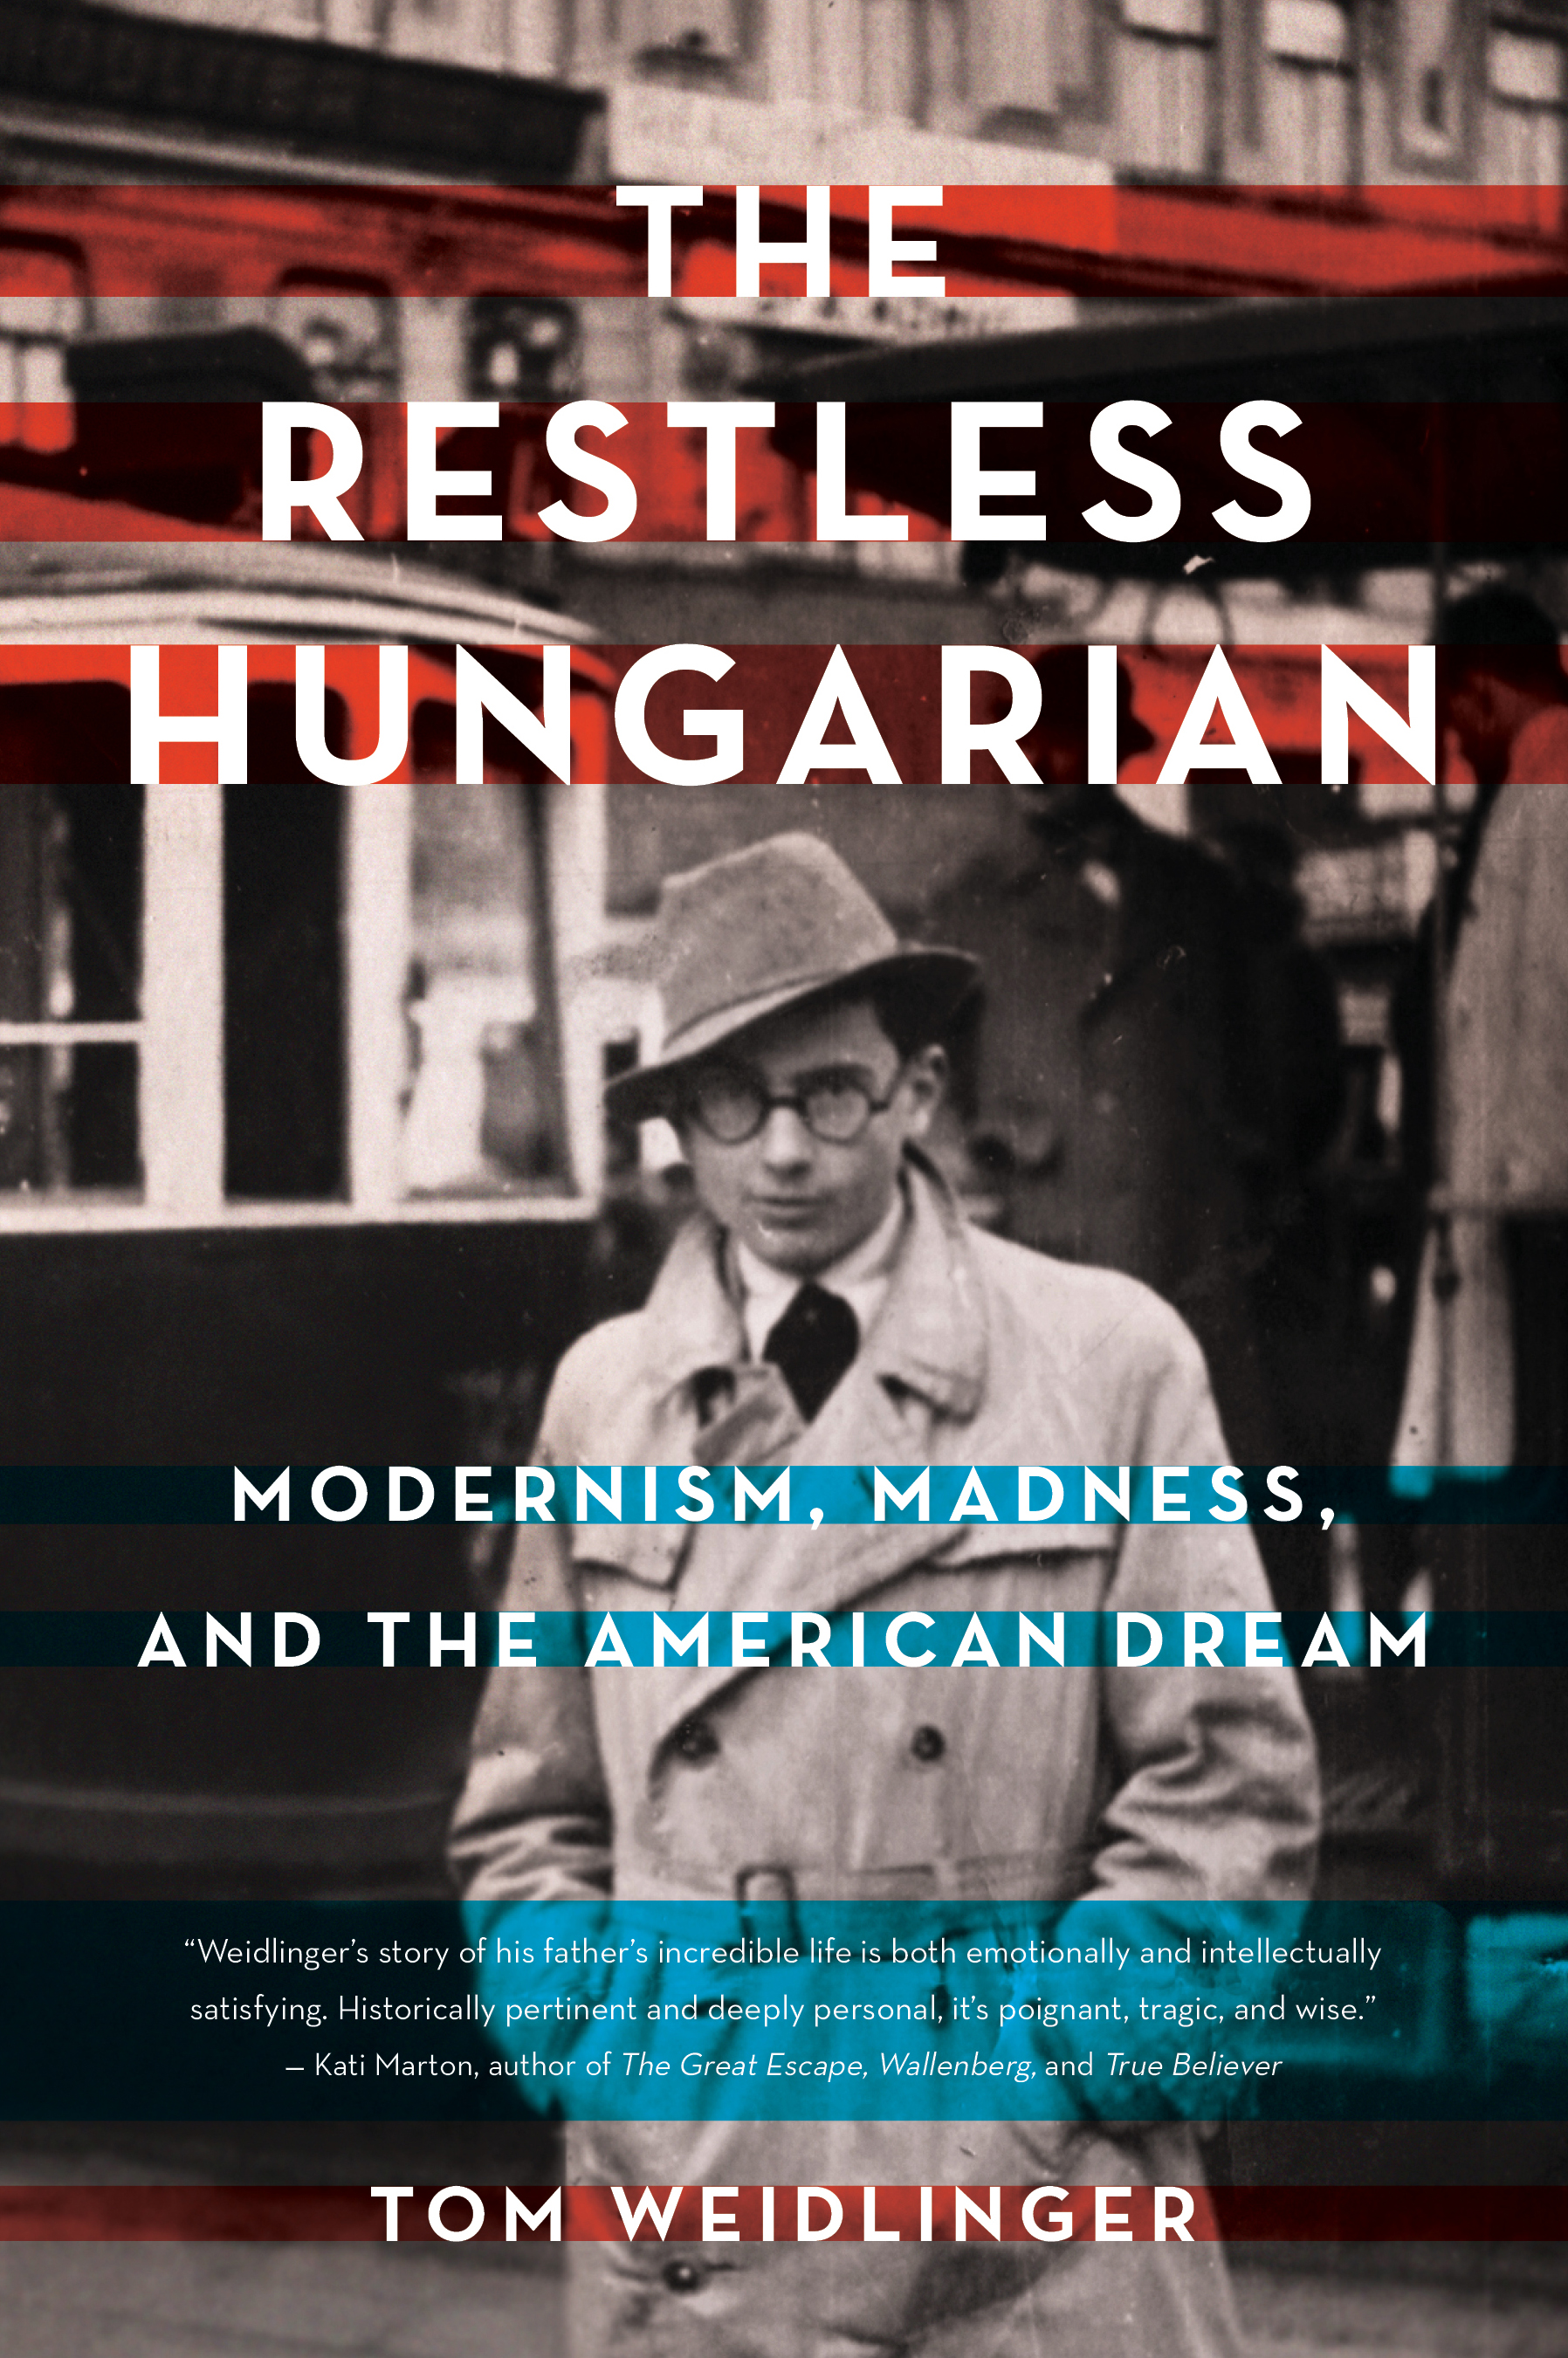 The Restless Hungarian